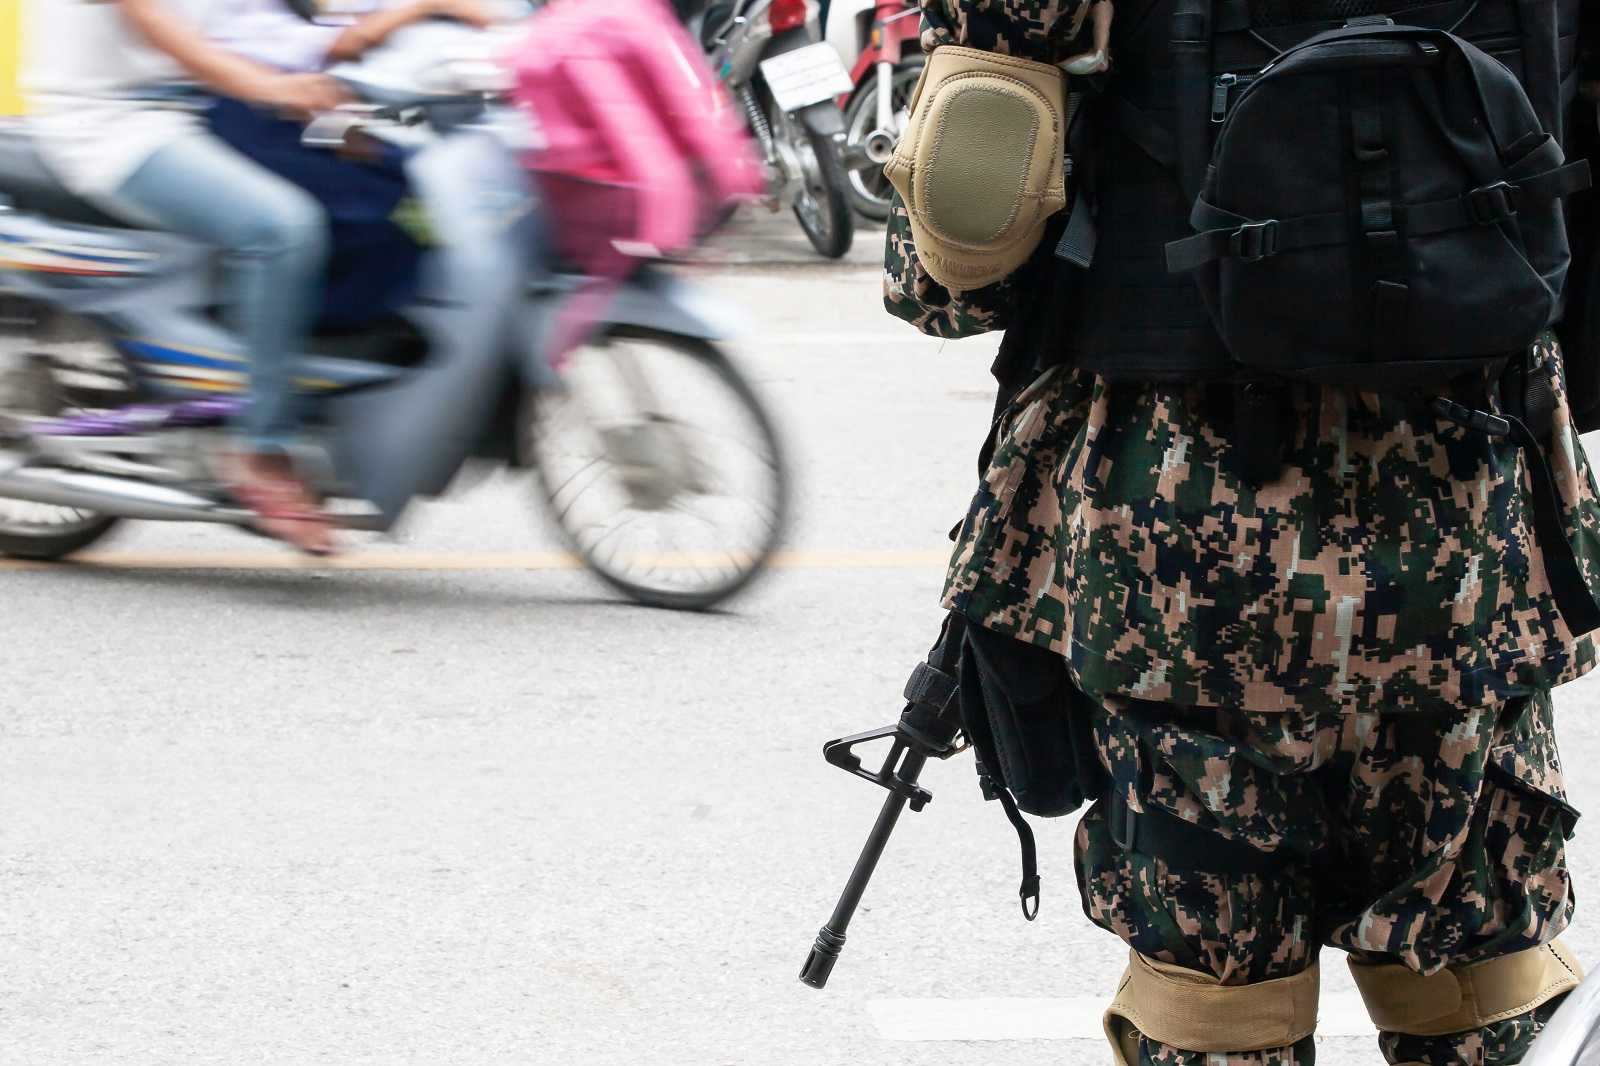 Royal Thai Army soldier on patrol near a local market at Narathiwat, during South Thailand's insurgency conflict (Tanes Ngamson/Getty Images)